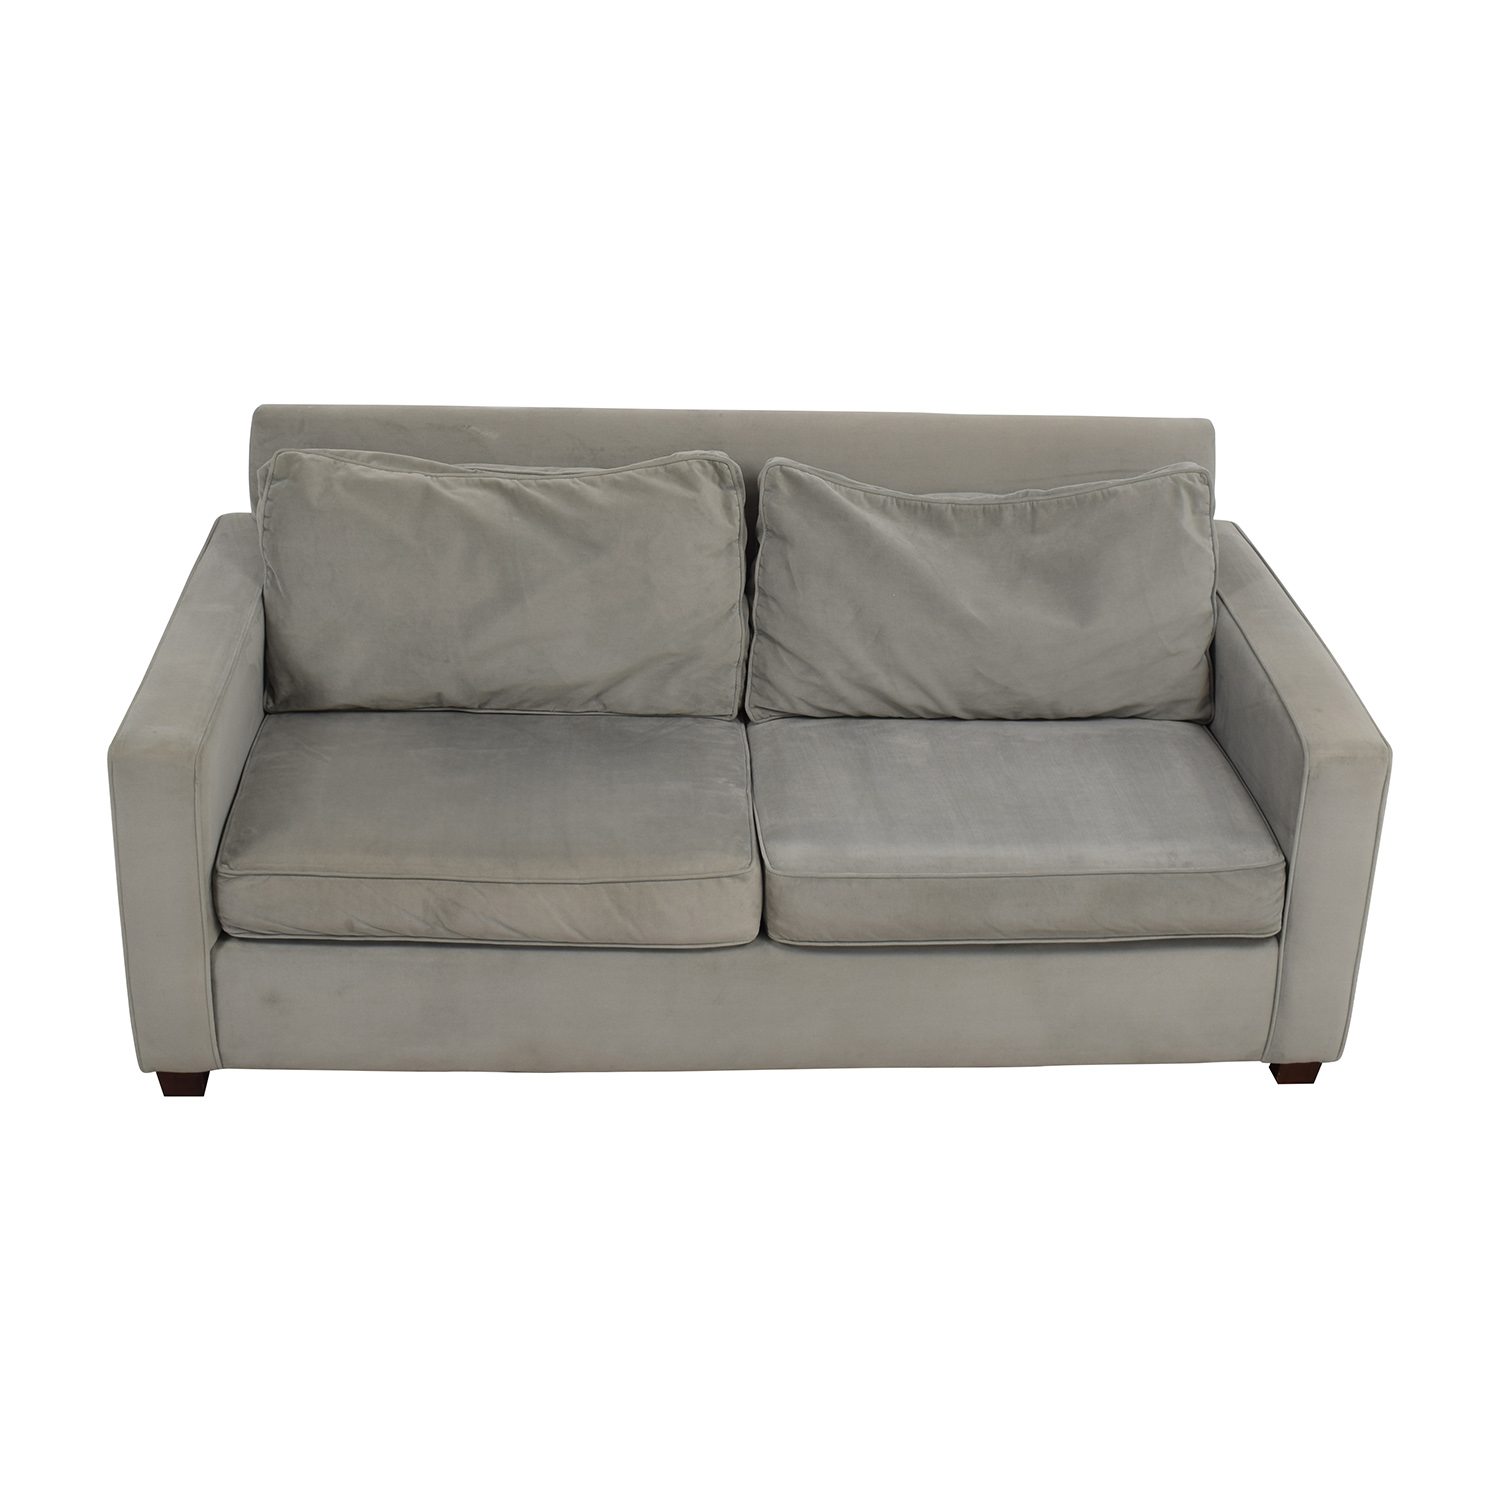 West Elm West Elm Henry Two-Seat Sofa on sale